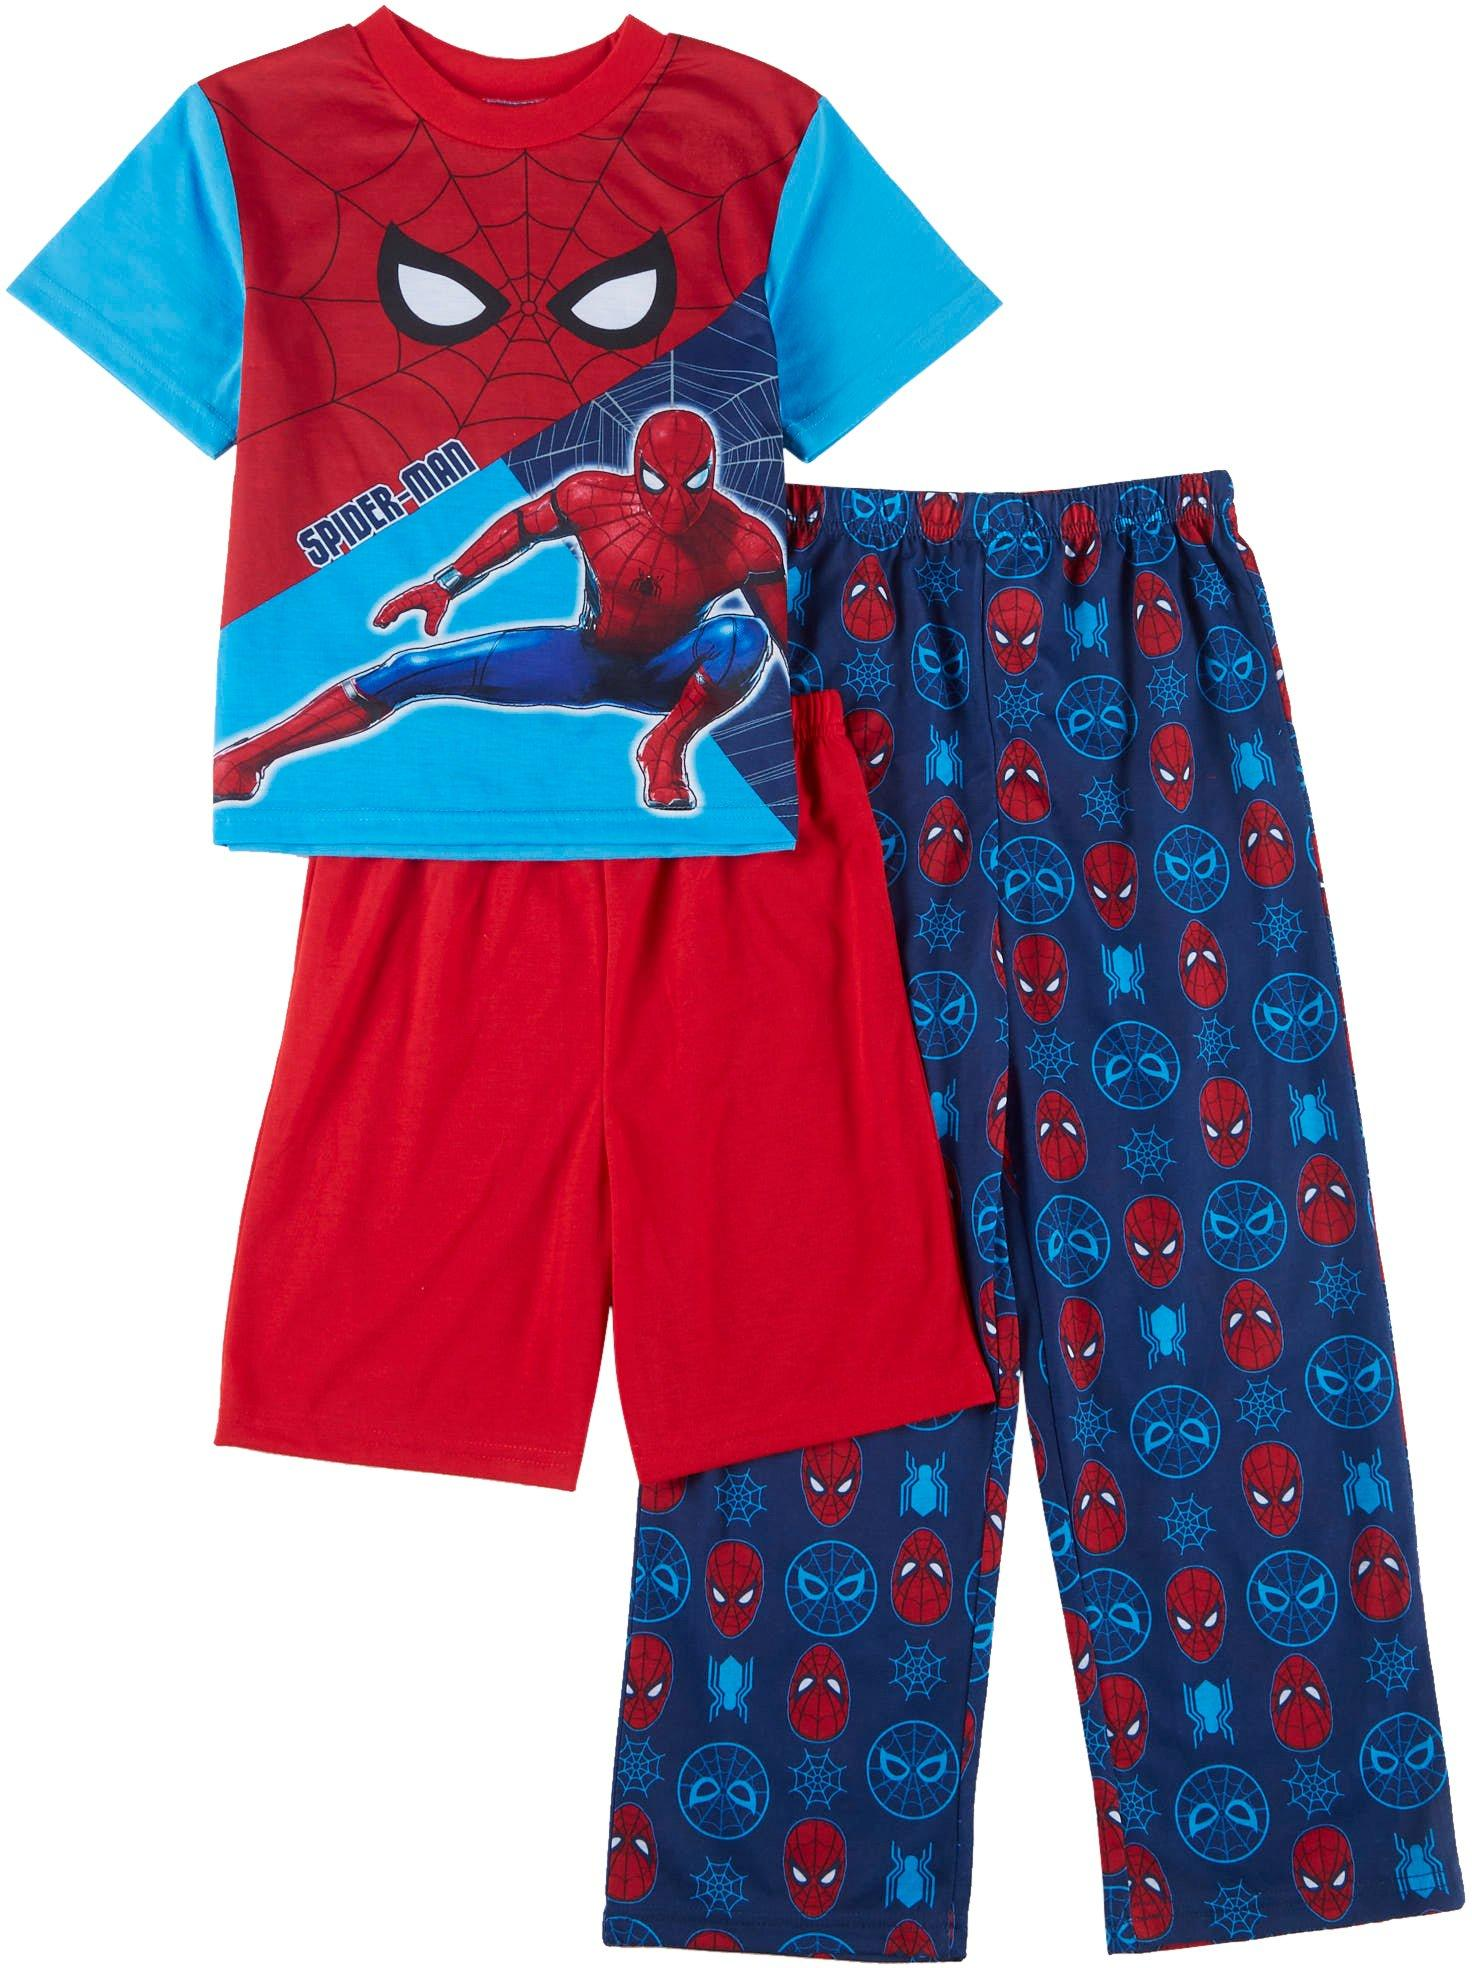 Disney Store Marvel Spider-man Boy 2PC Long Sleeve Tight Fit Pajama Set 6 7